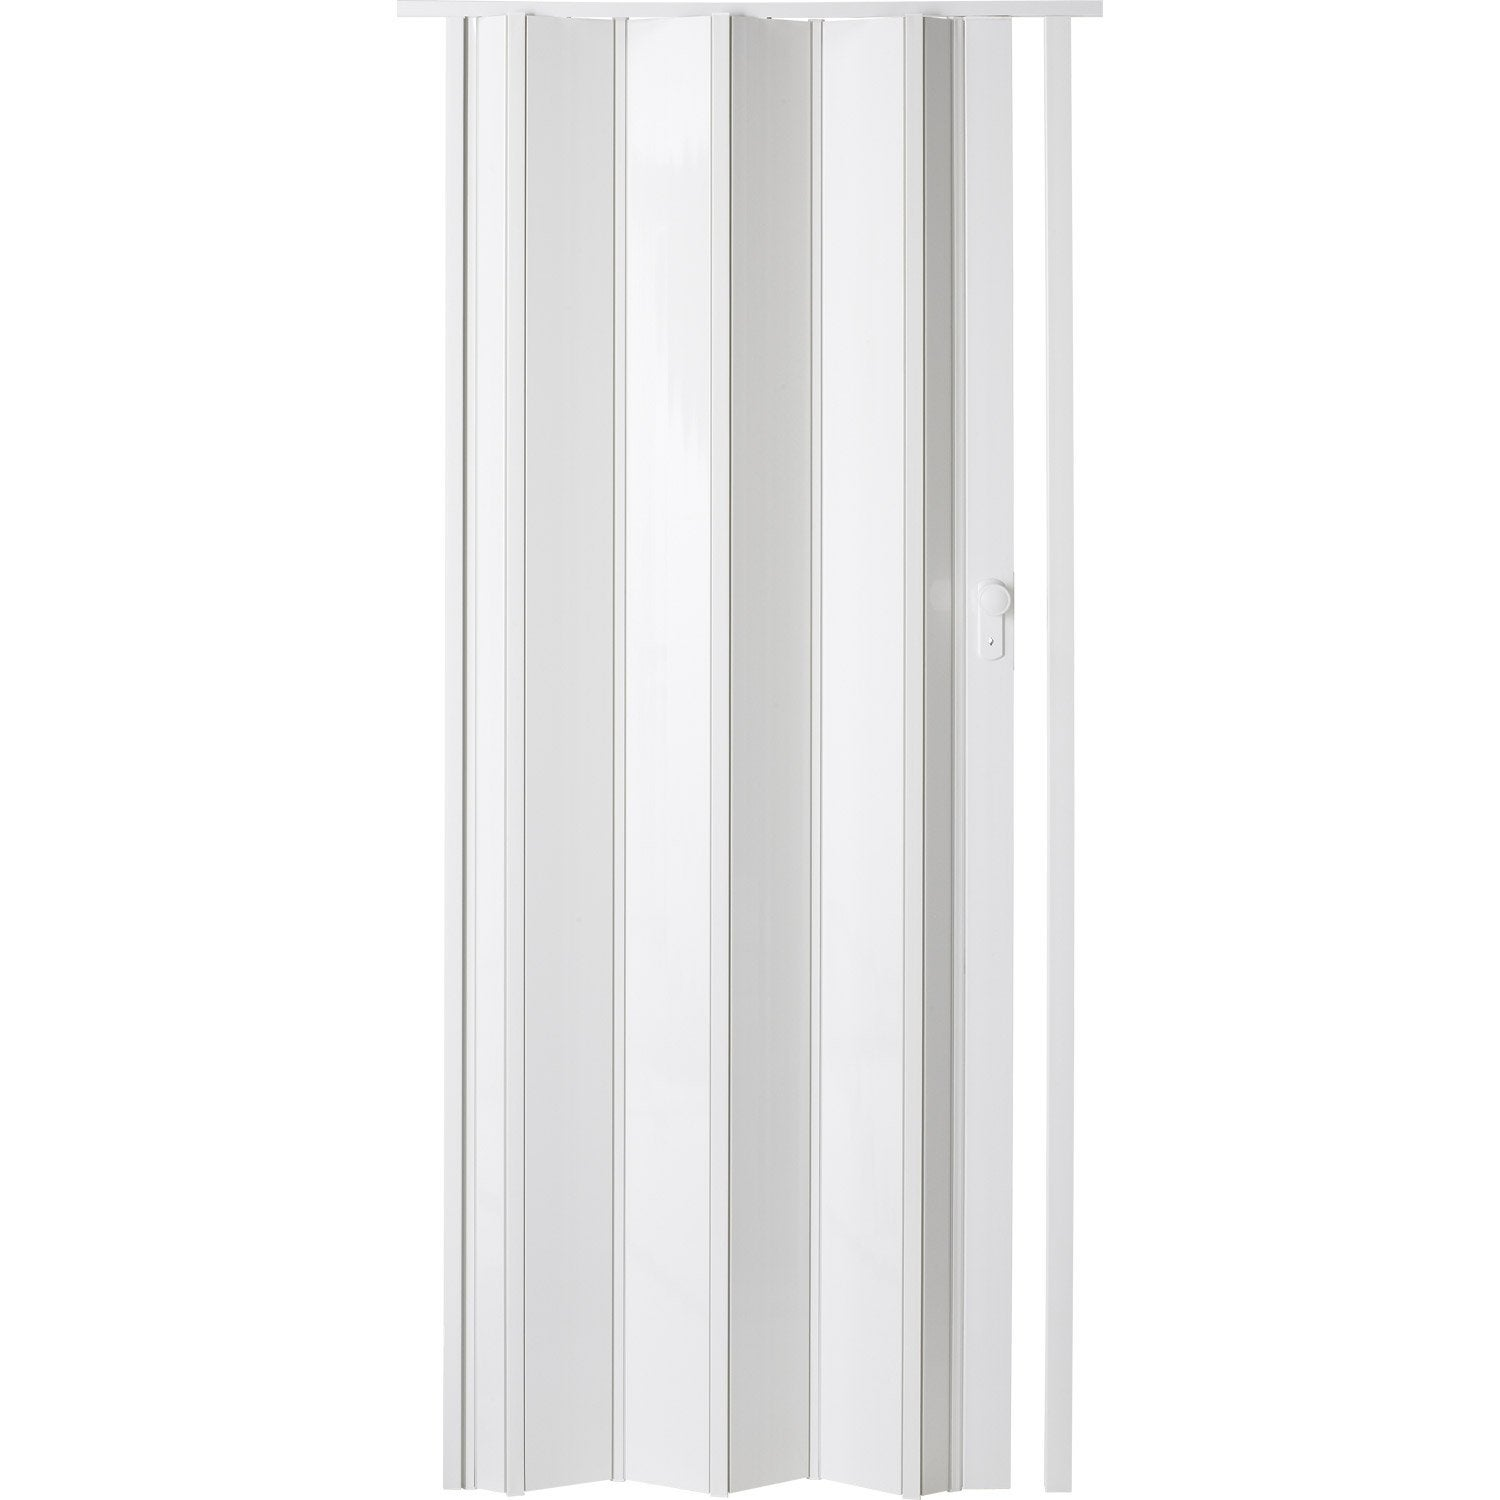 Porte extensible ibiza blanc brillant 205 x 85 cm pais for Porte salon pliante